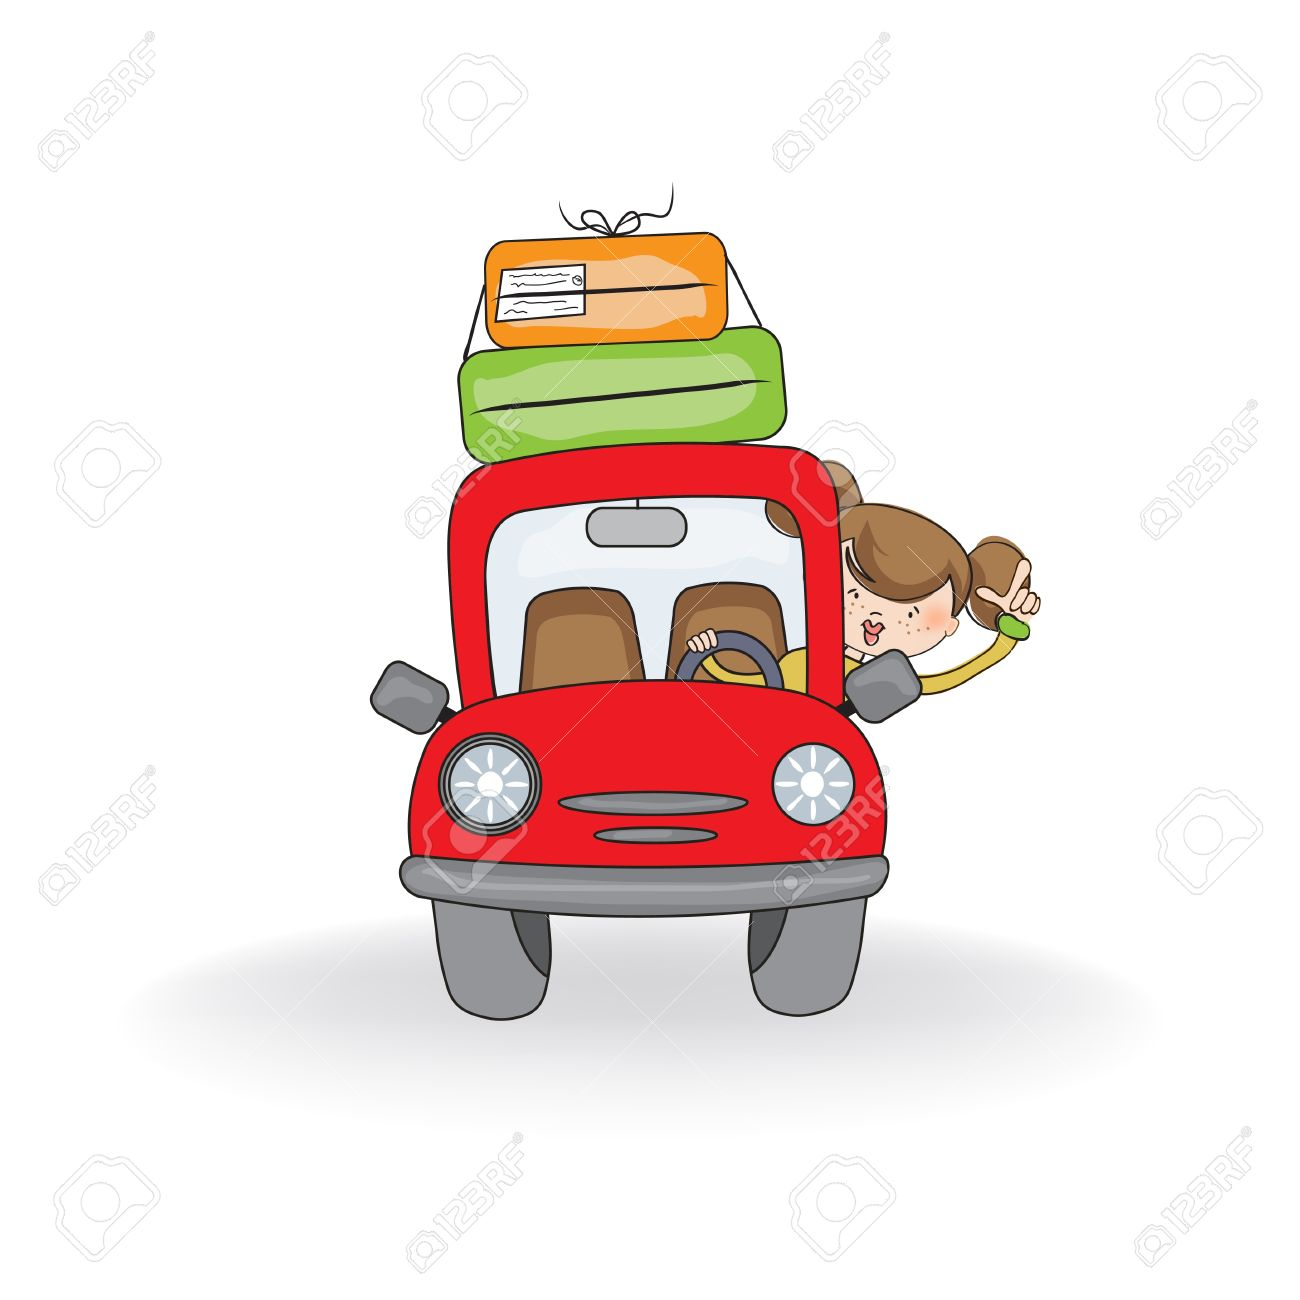 Woman Traveling By Car Royalty Free Cliparts Vectors And Stock Rh 123rf Com